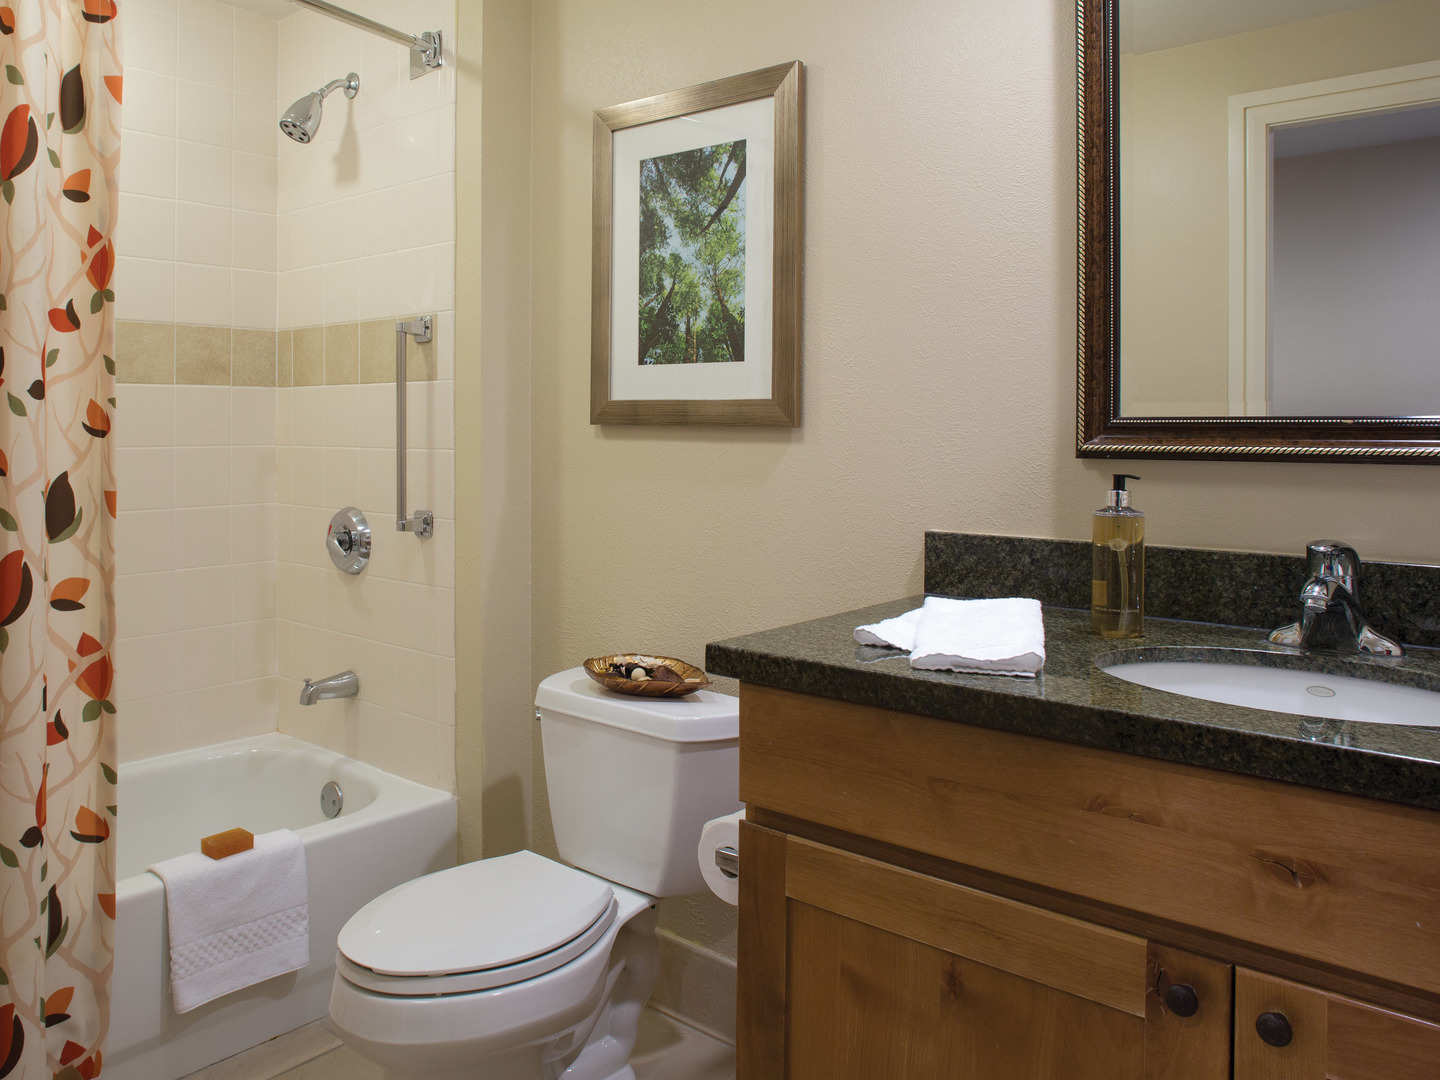 Marriott's Timber Lodge<span class='trademark'>®</span> Villa Bathroom. Marriott's Timber Lodge<span class='trademark'>®</span> is located in South Lake Tahoe, California United States.